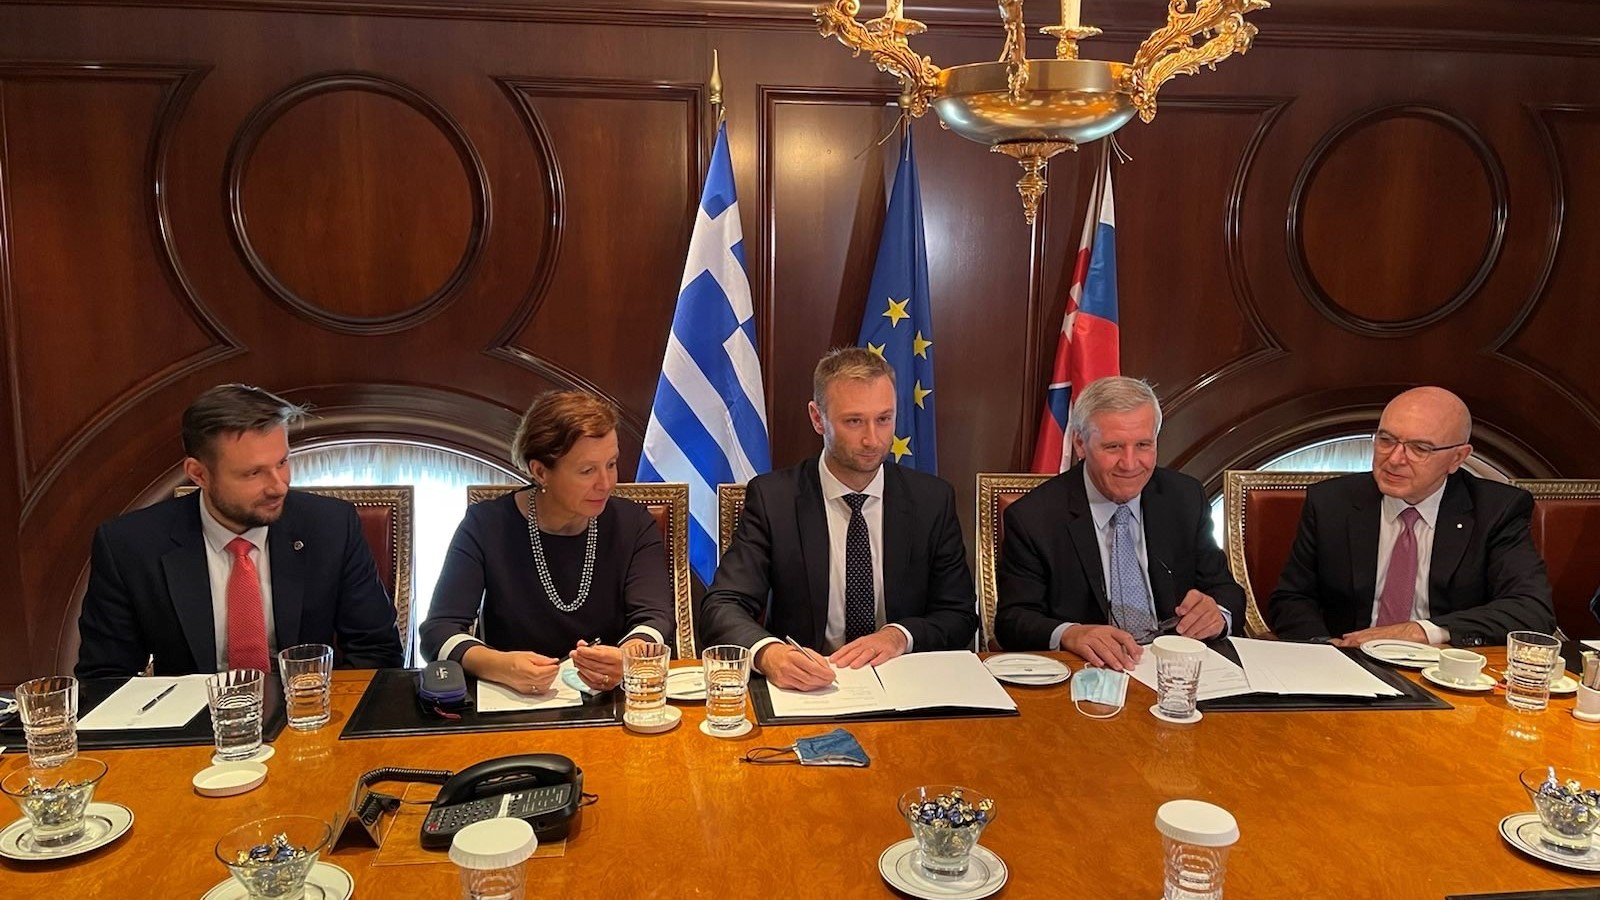 GLOBSEC signed a cooperation agreement with Delphi Economic Forum